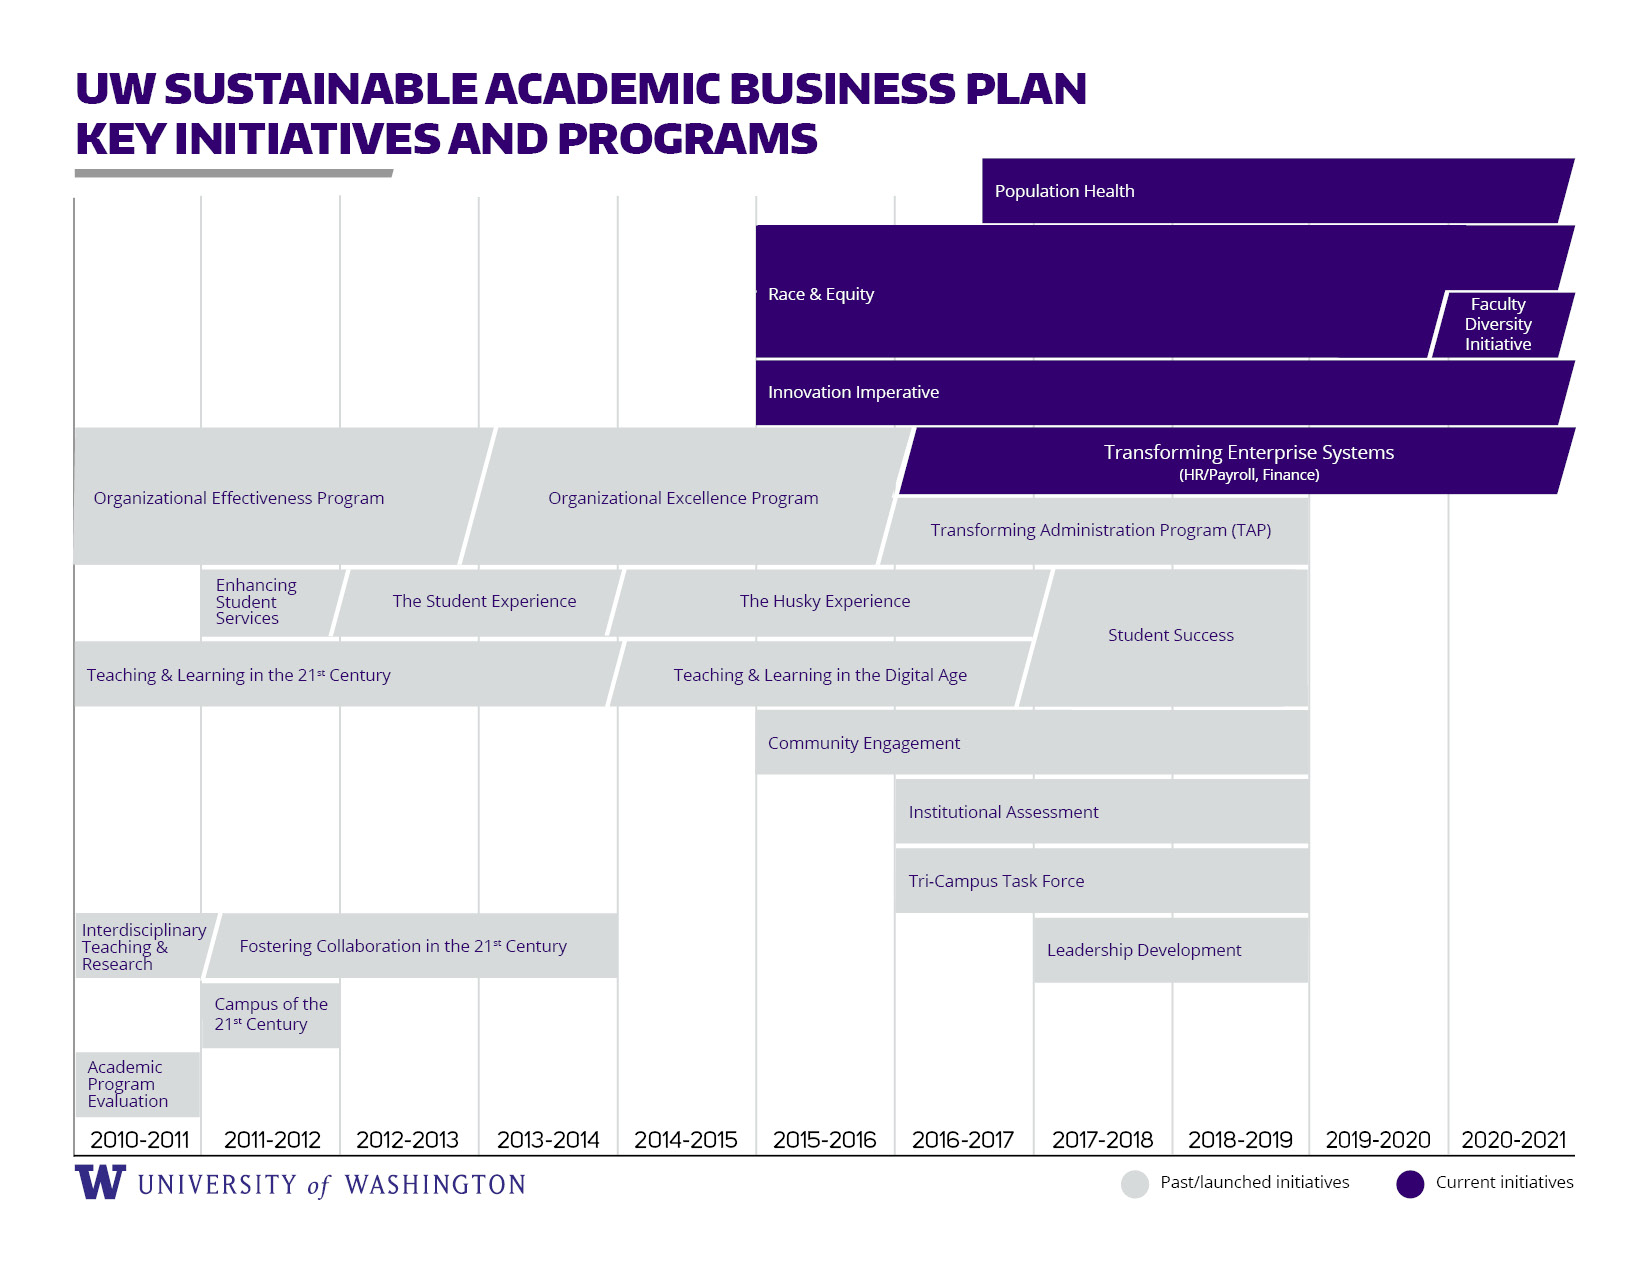 UW Sustainable Academic Business Plan key initiatives and programs timeline from 2010 to 2021